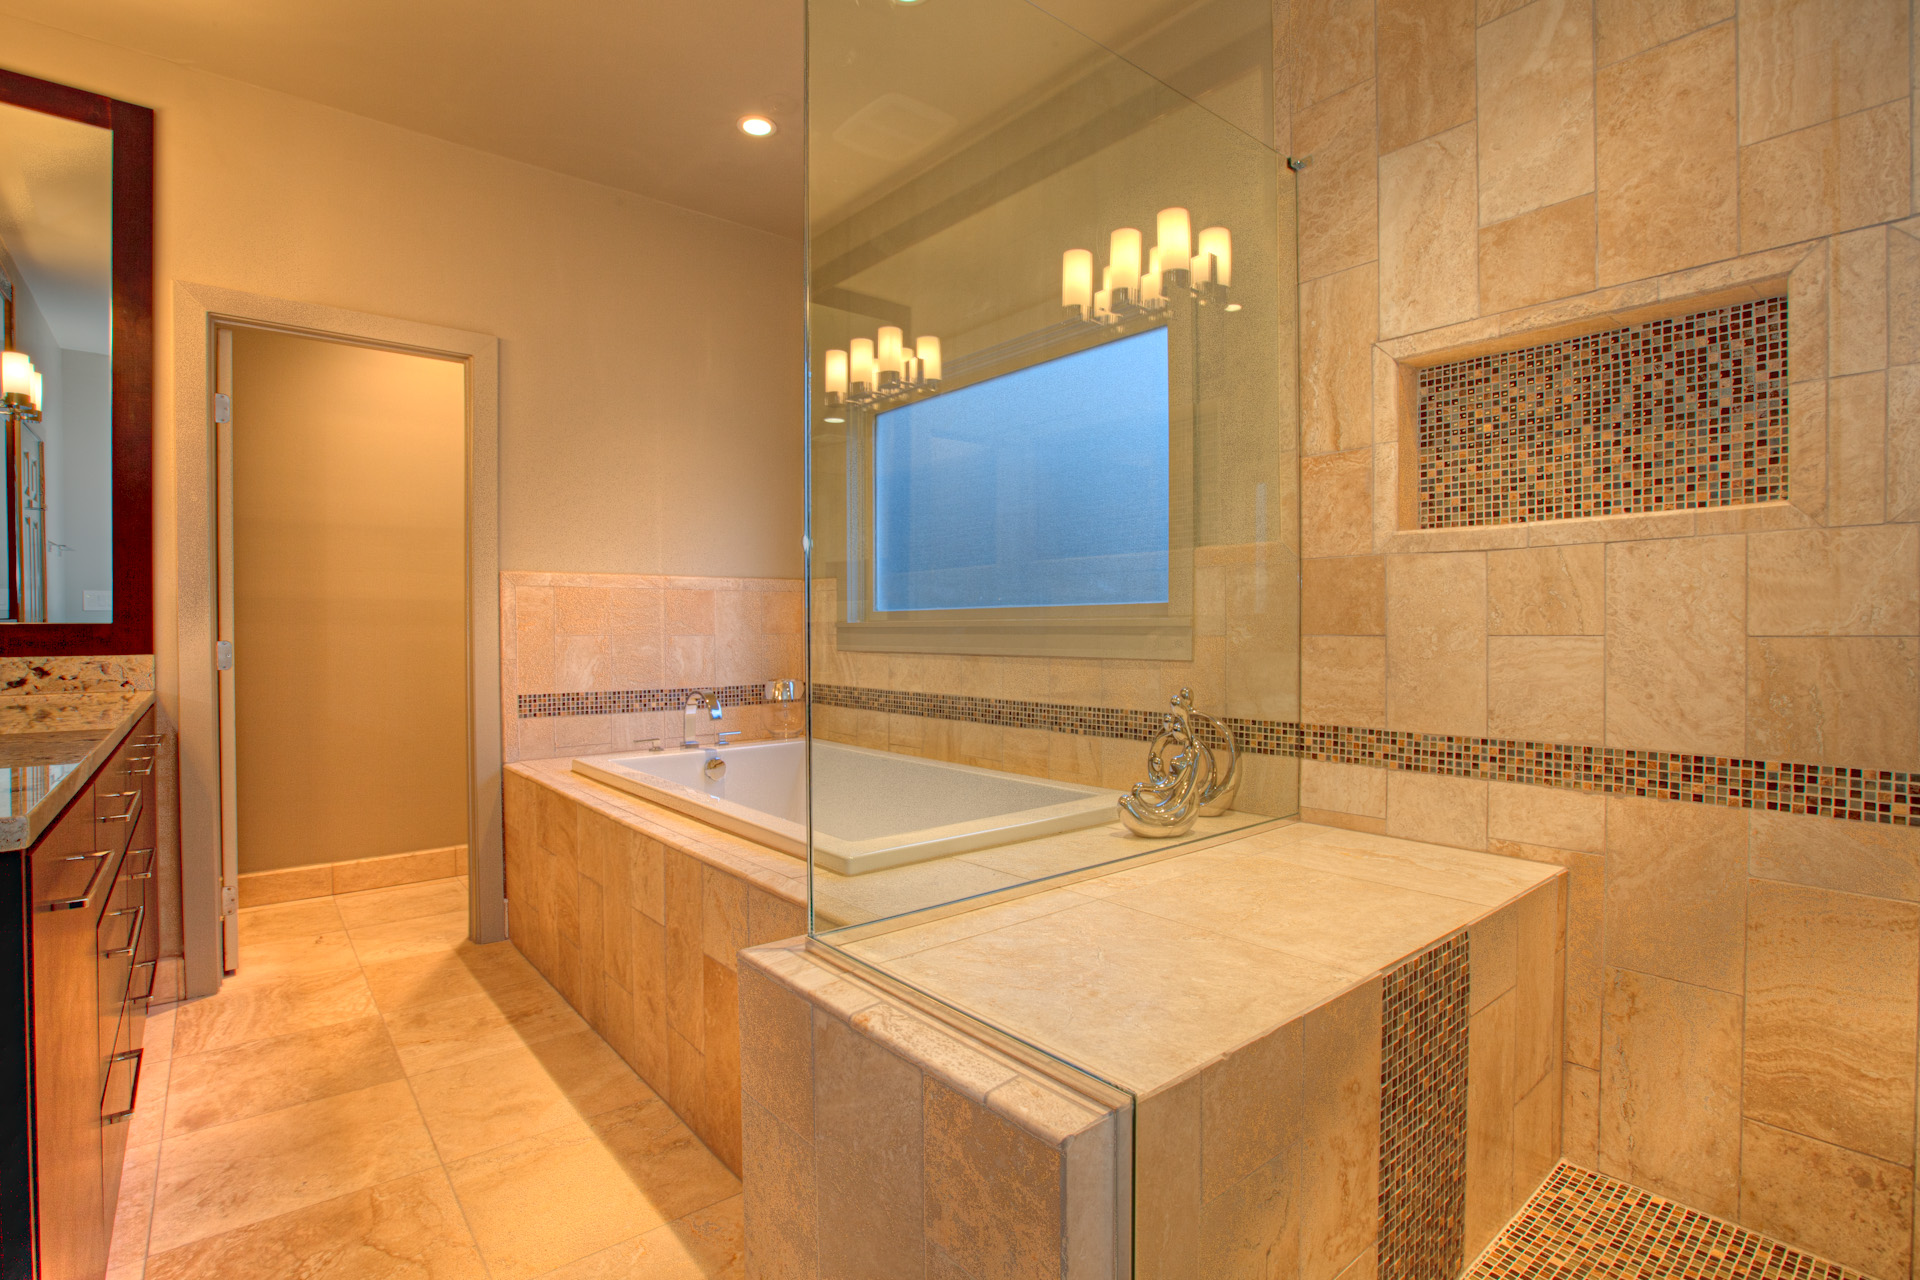 Simple Color For Wall Bathroom Remodeling Ideas For Master Bathrooms Images 18